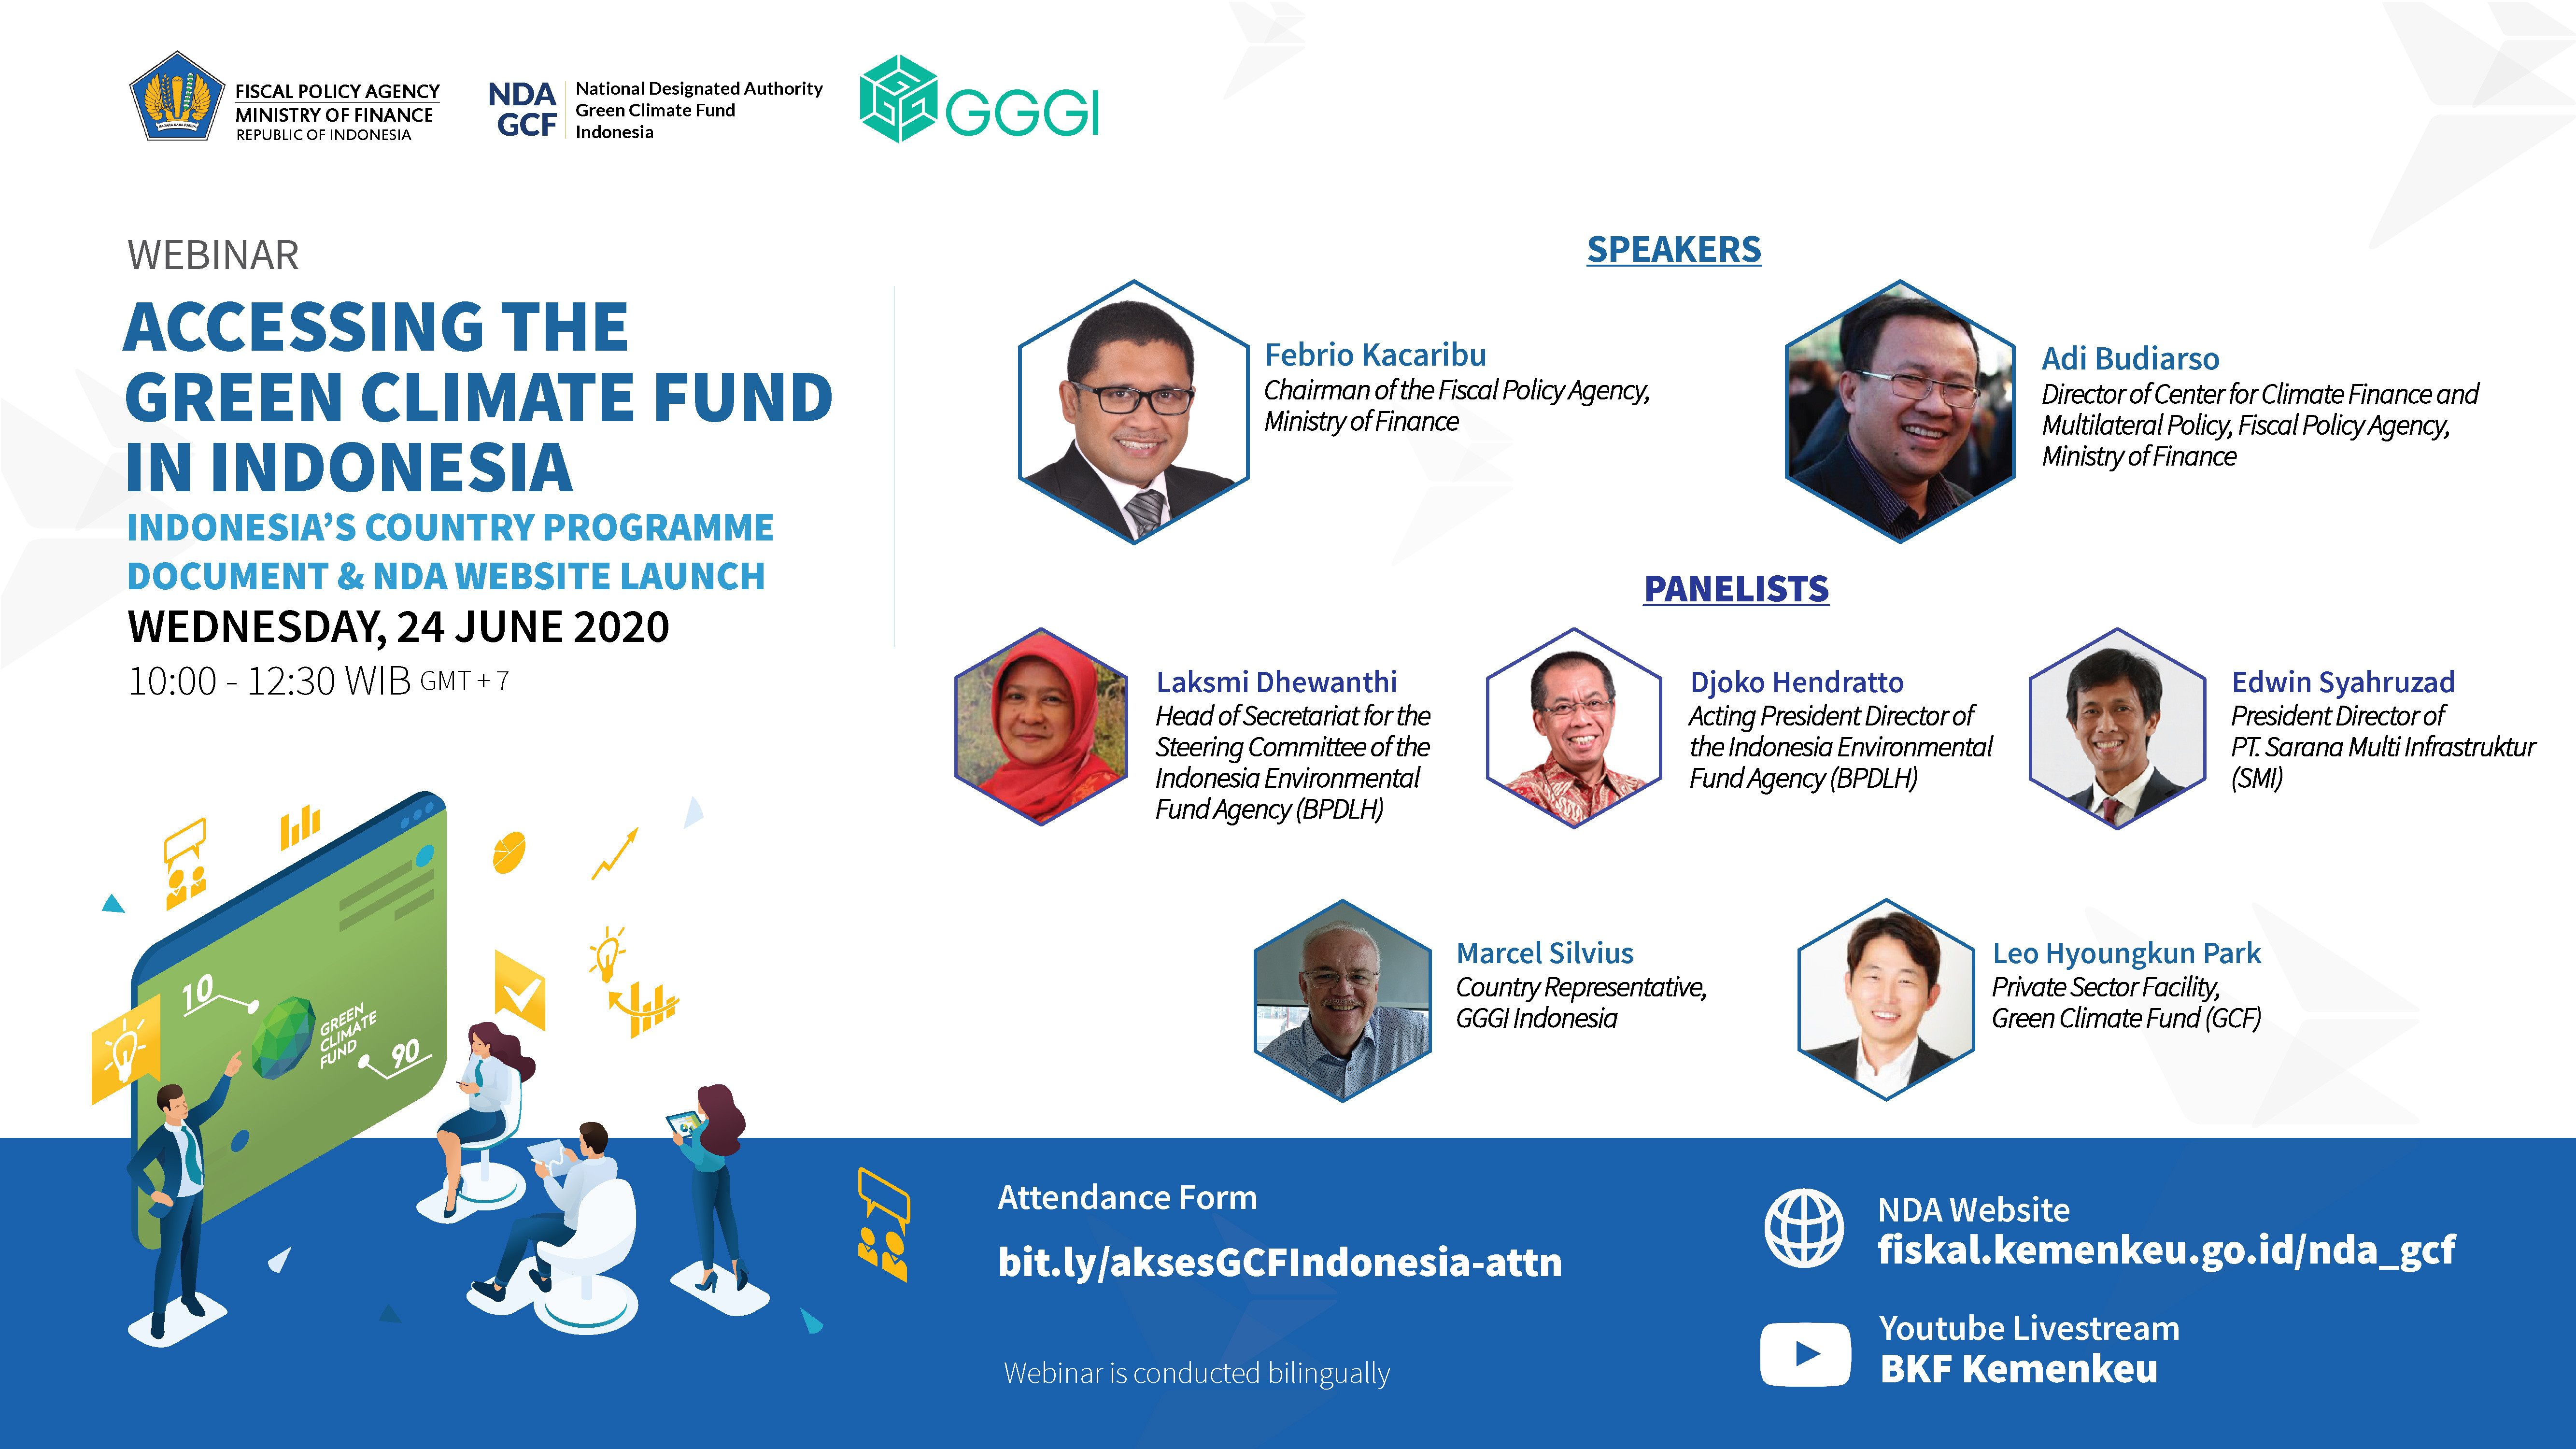 Mengakses Green Climate Fund di Indonesia